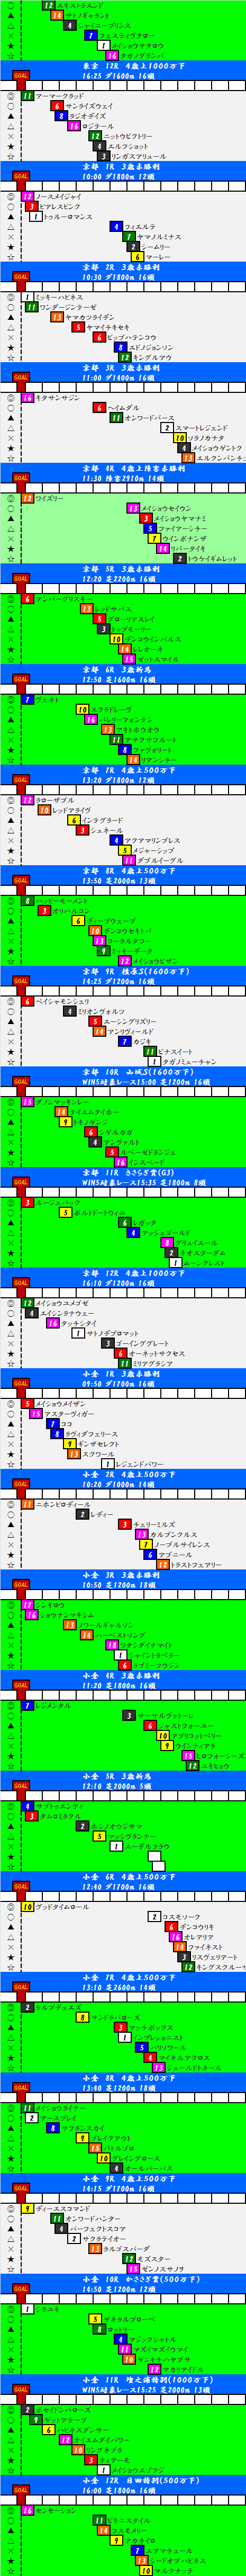 2015020802.png